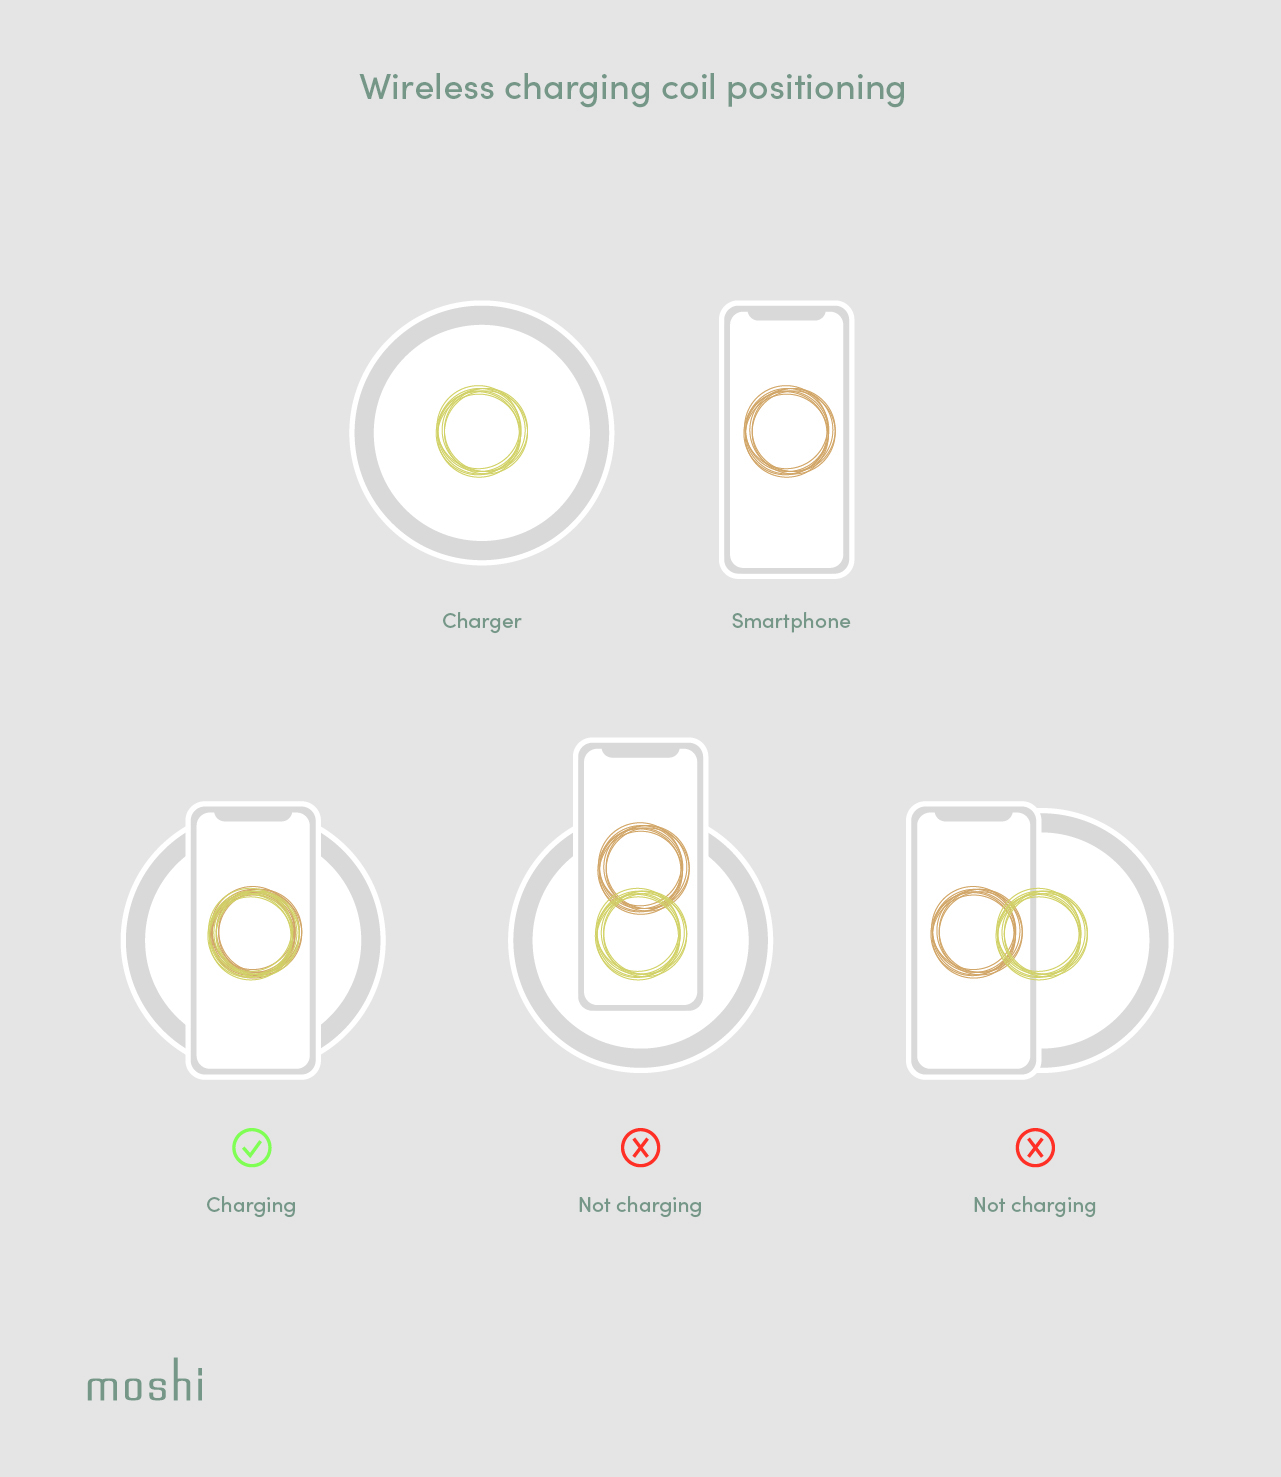 An illustration of how coil positioning can affect wireless charging for smartphones